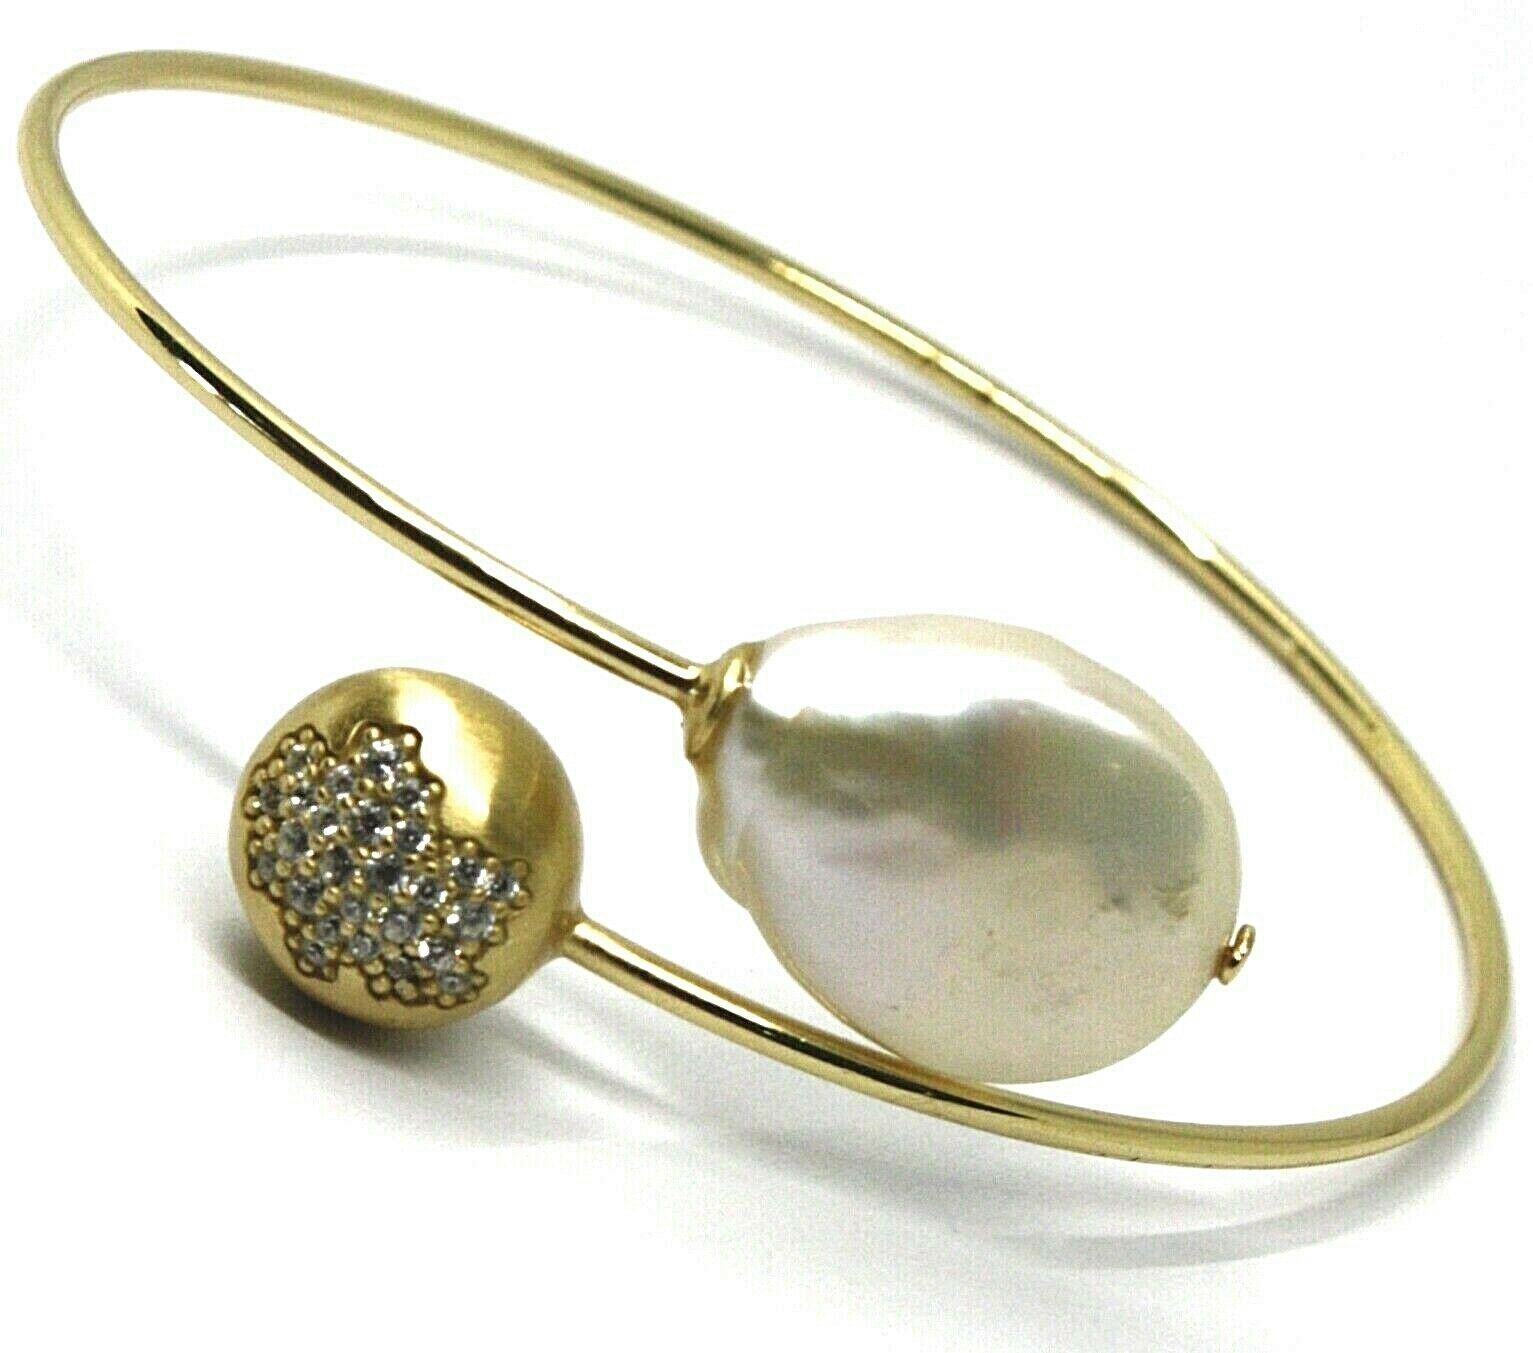 SOLID 925 STERLING SILVER BANGLE BRACELET, ZIRCONIA NUGGET AND DROP PEARL